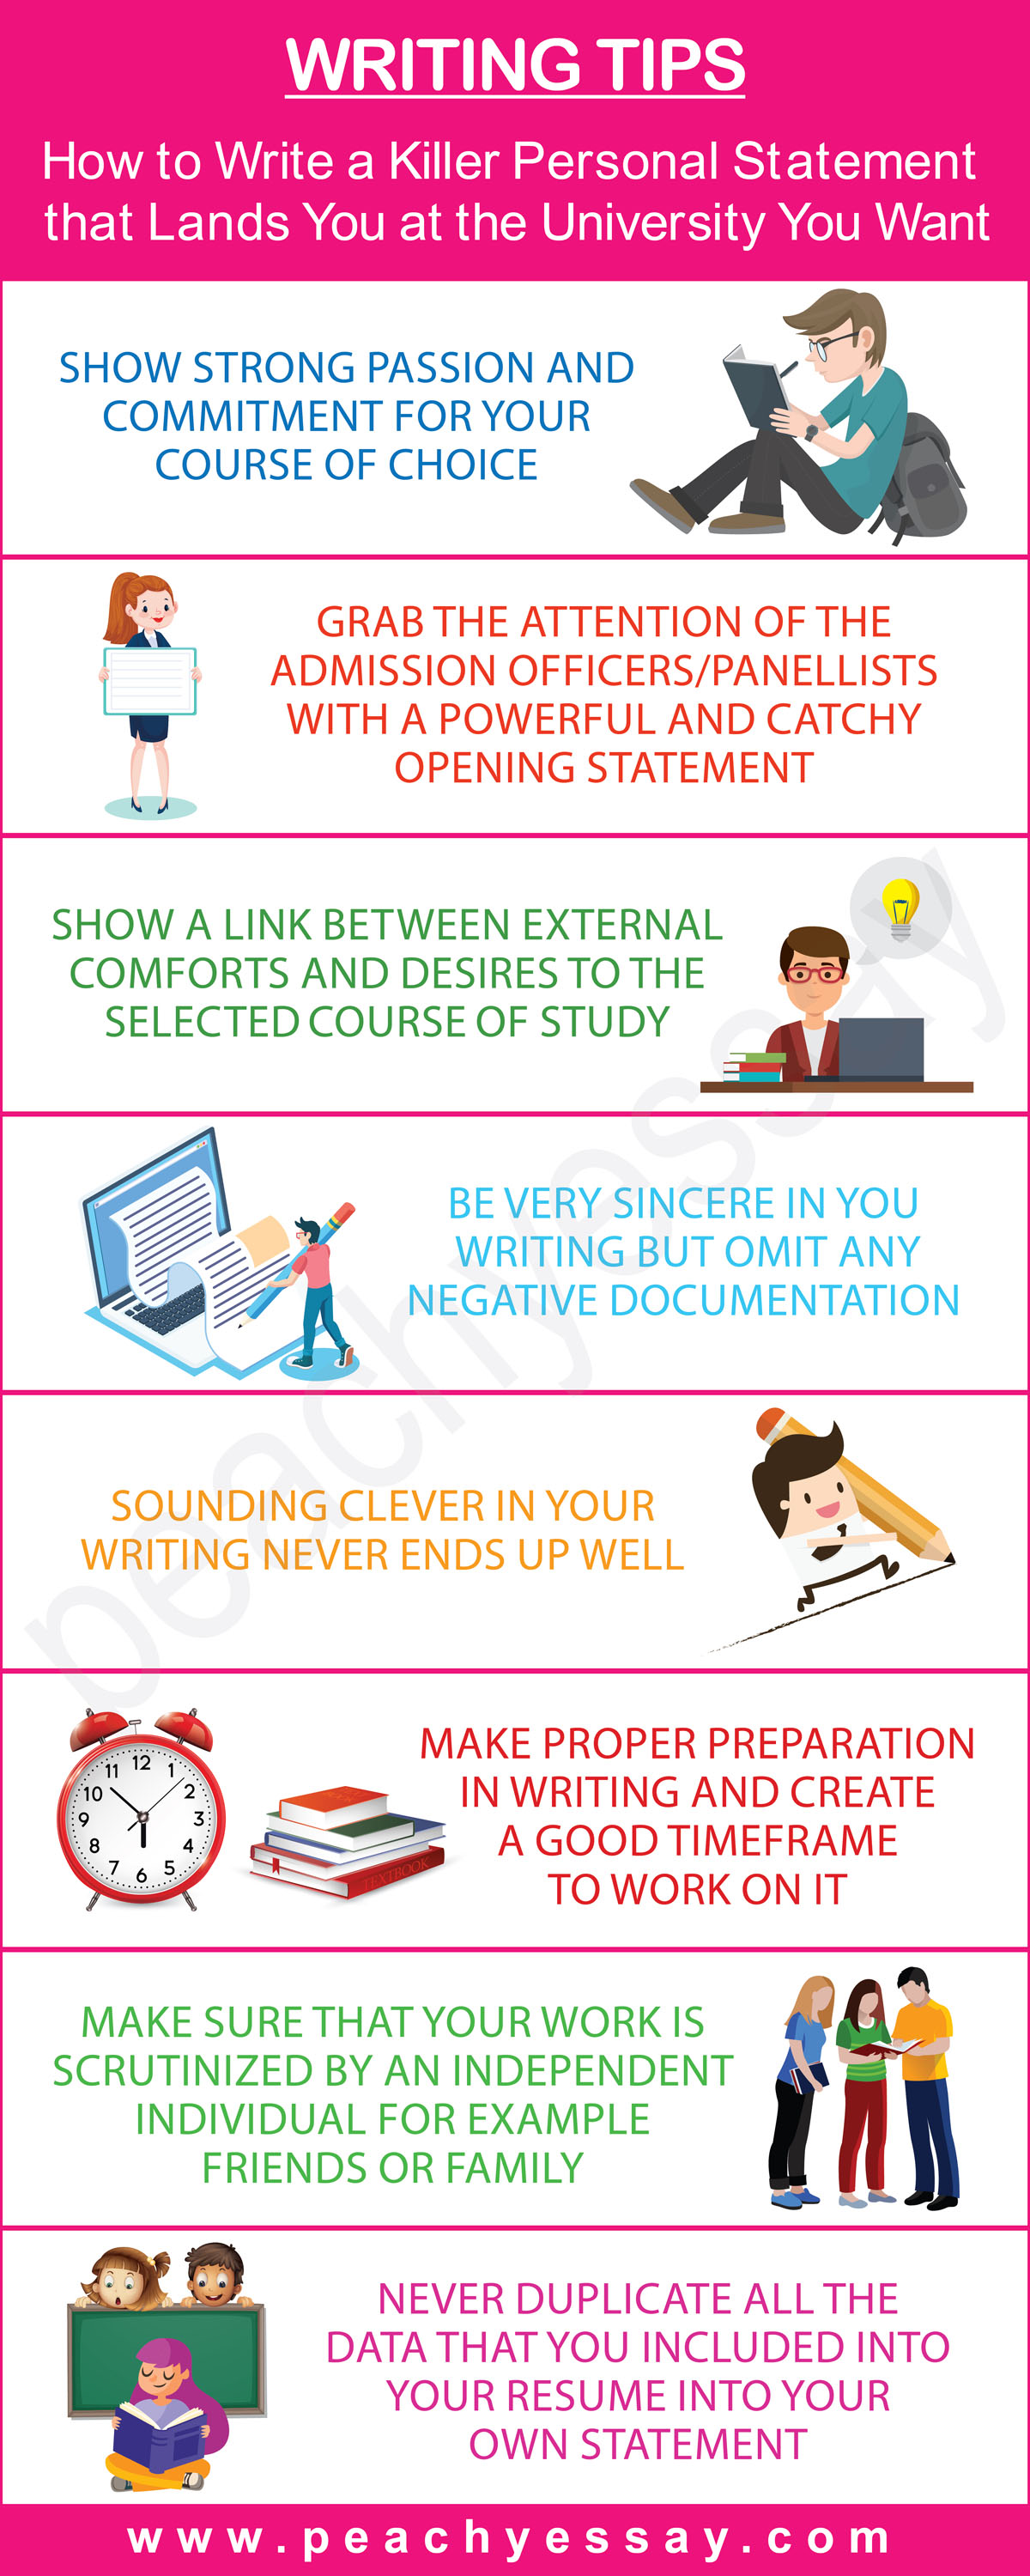 How To Write the Killer Personal Statement for Your University